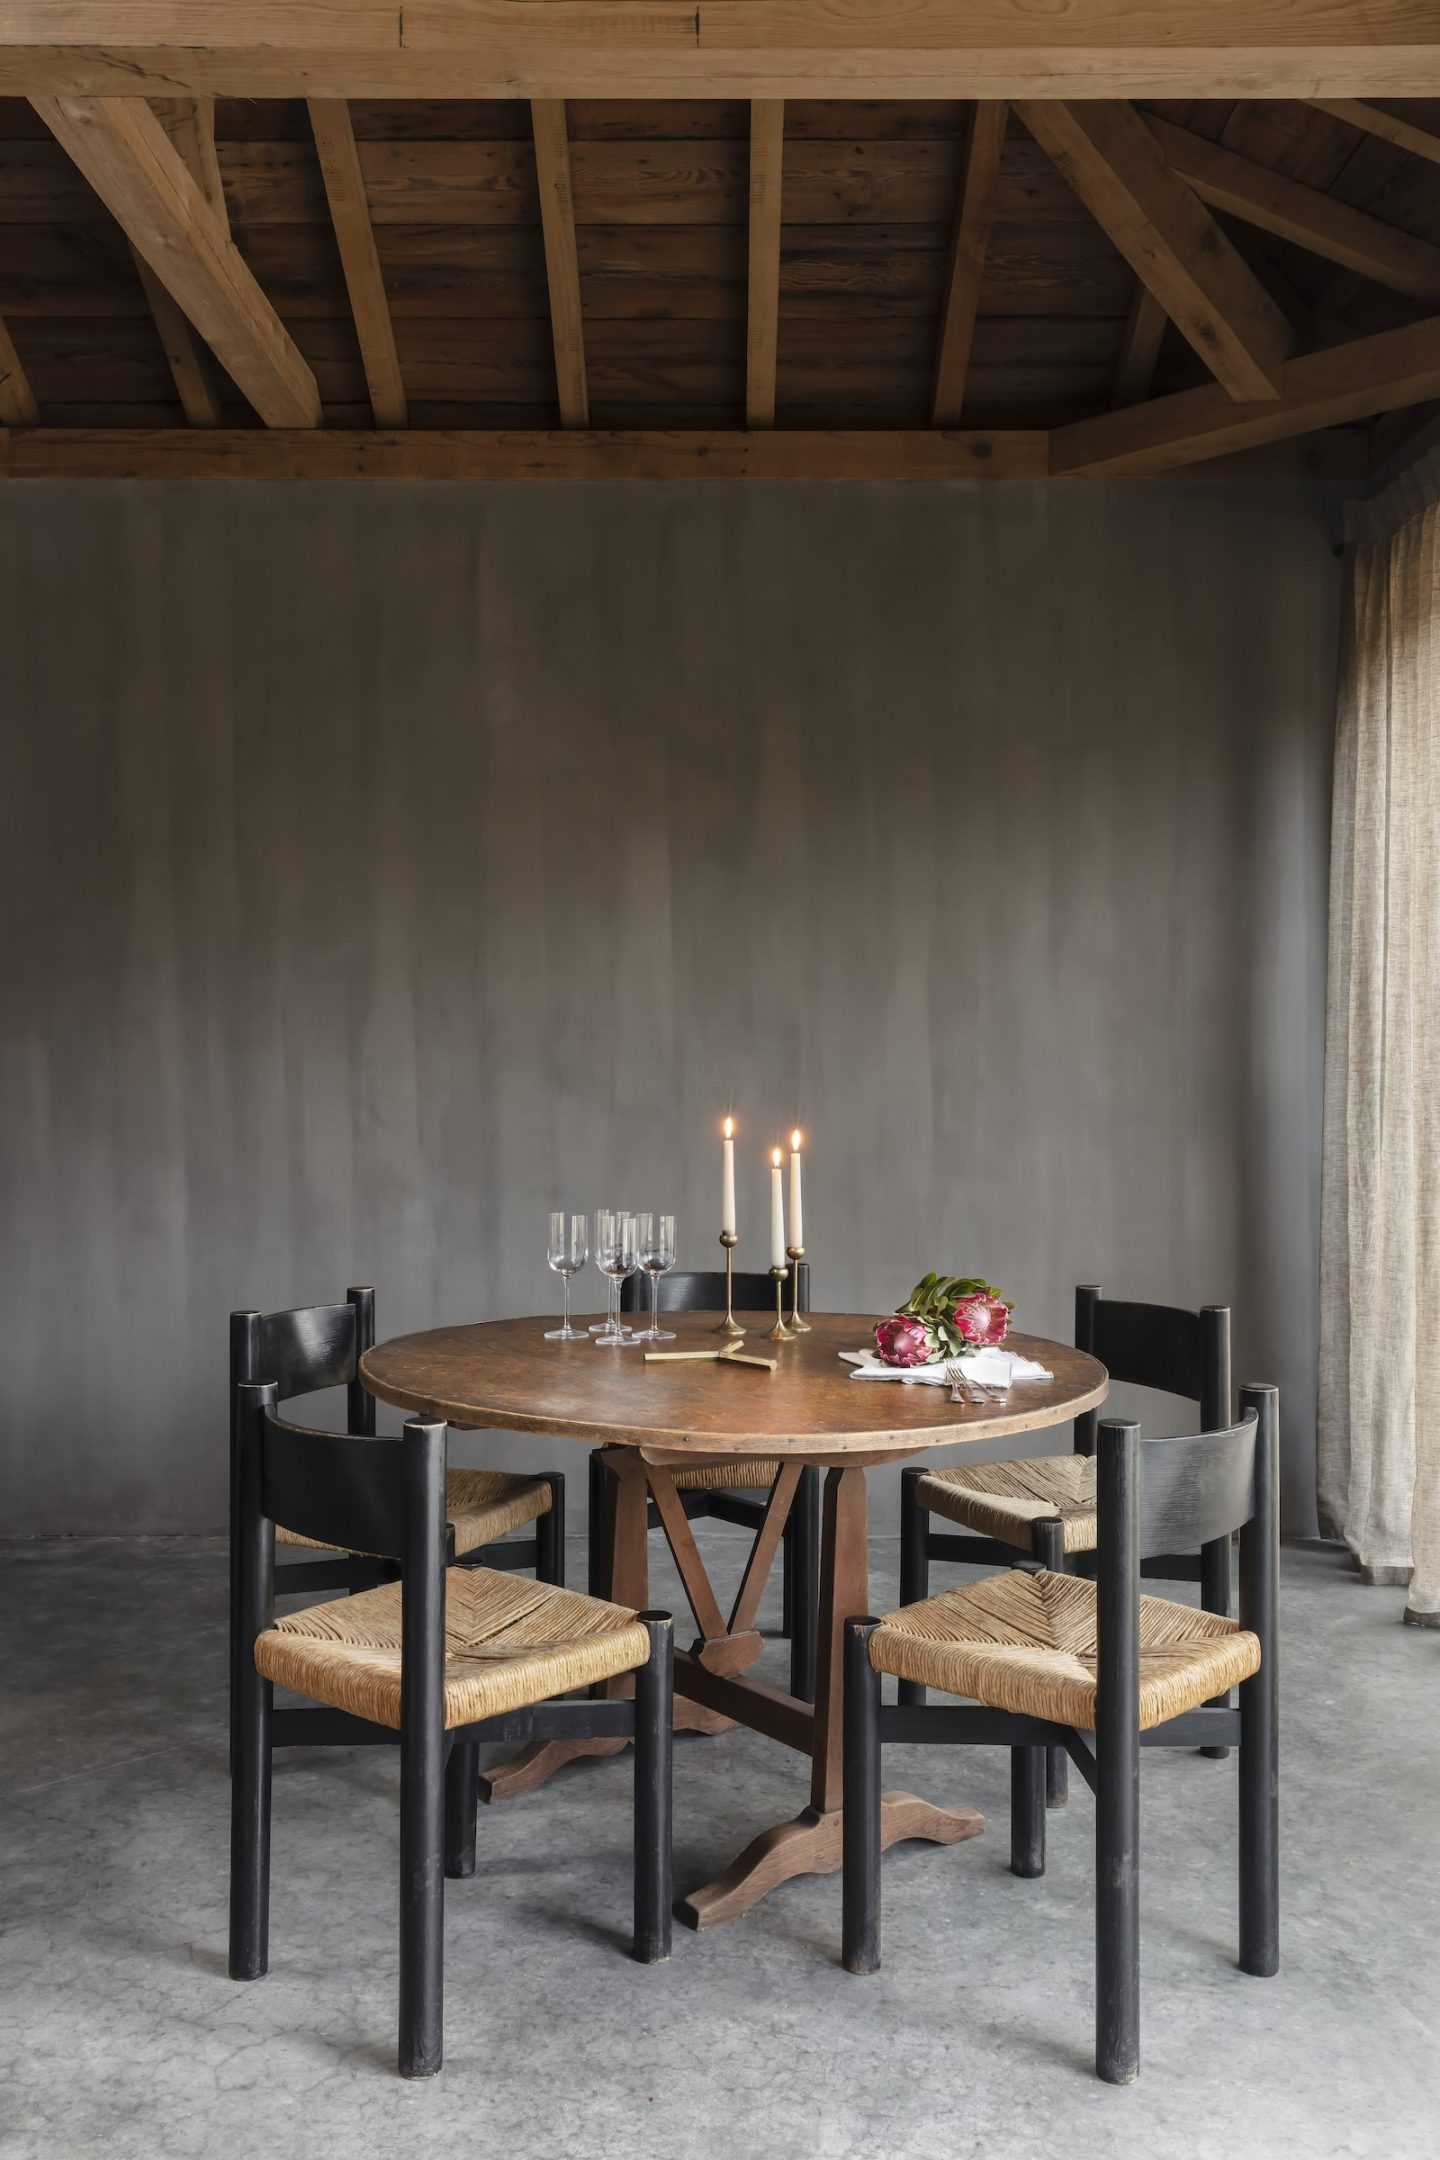 IGNANT-Architecture-Andy-Kerstens-MUD-Residence-05